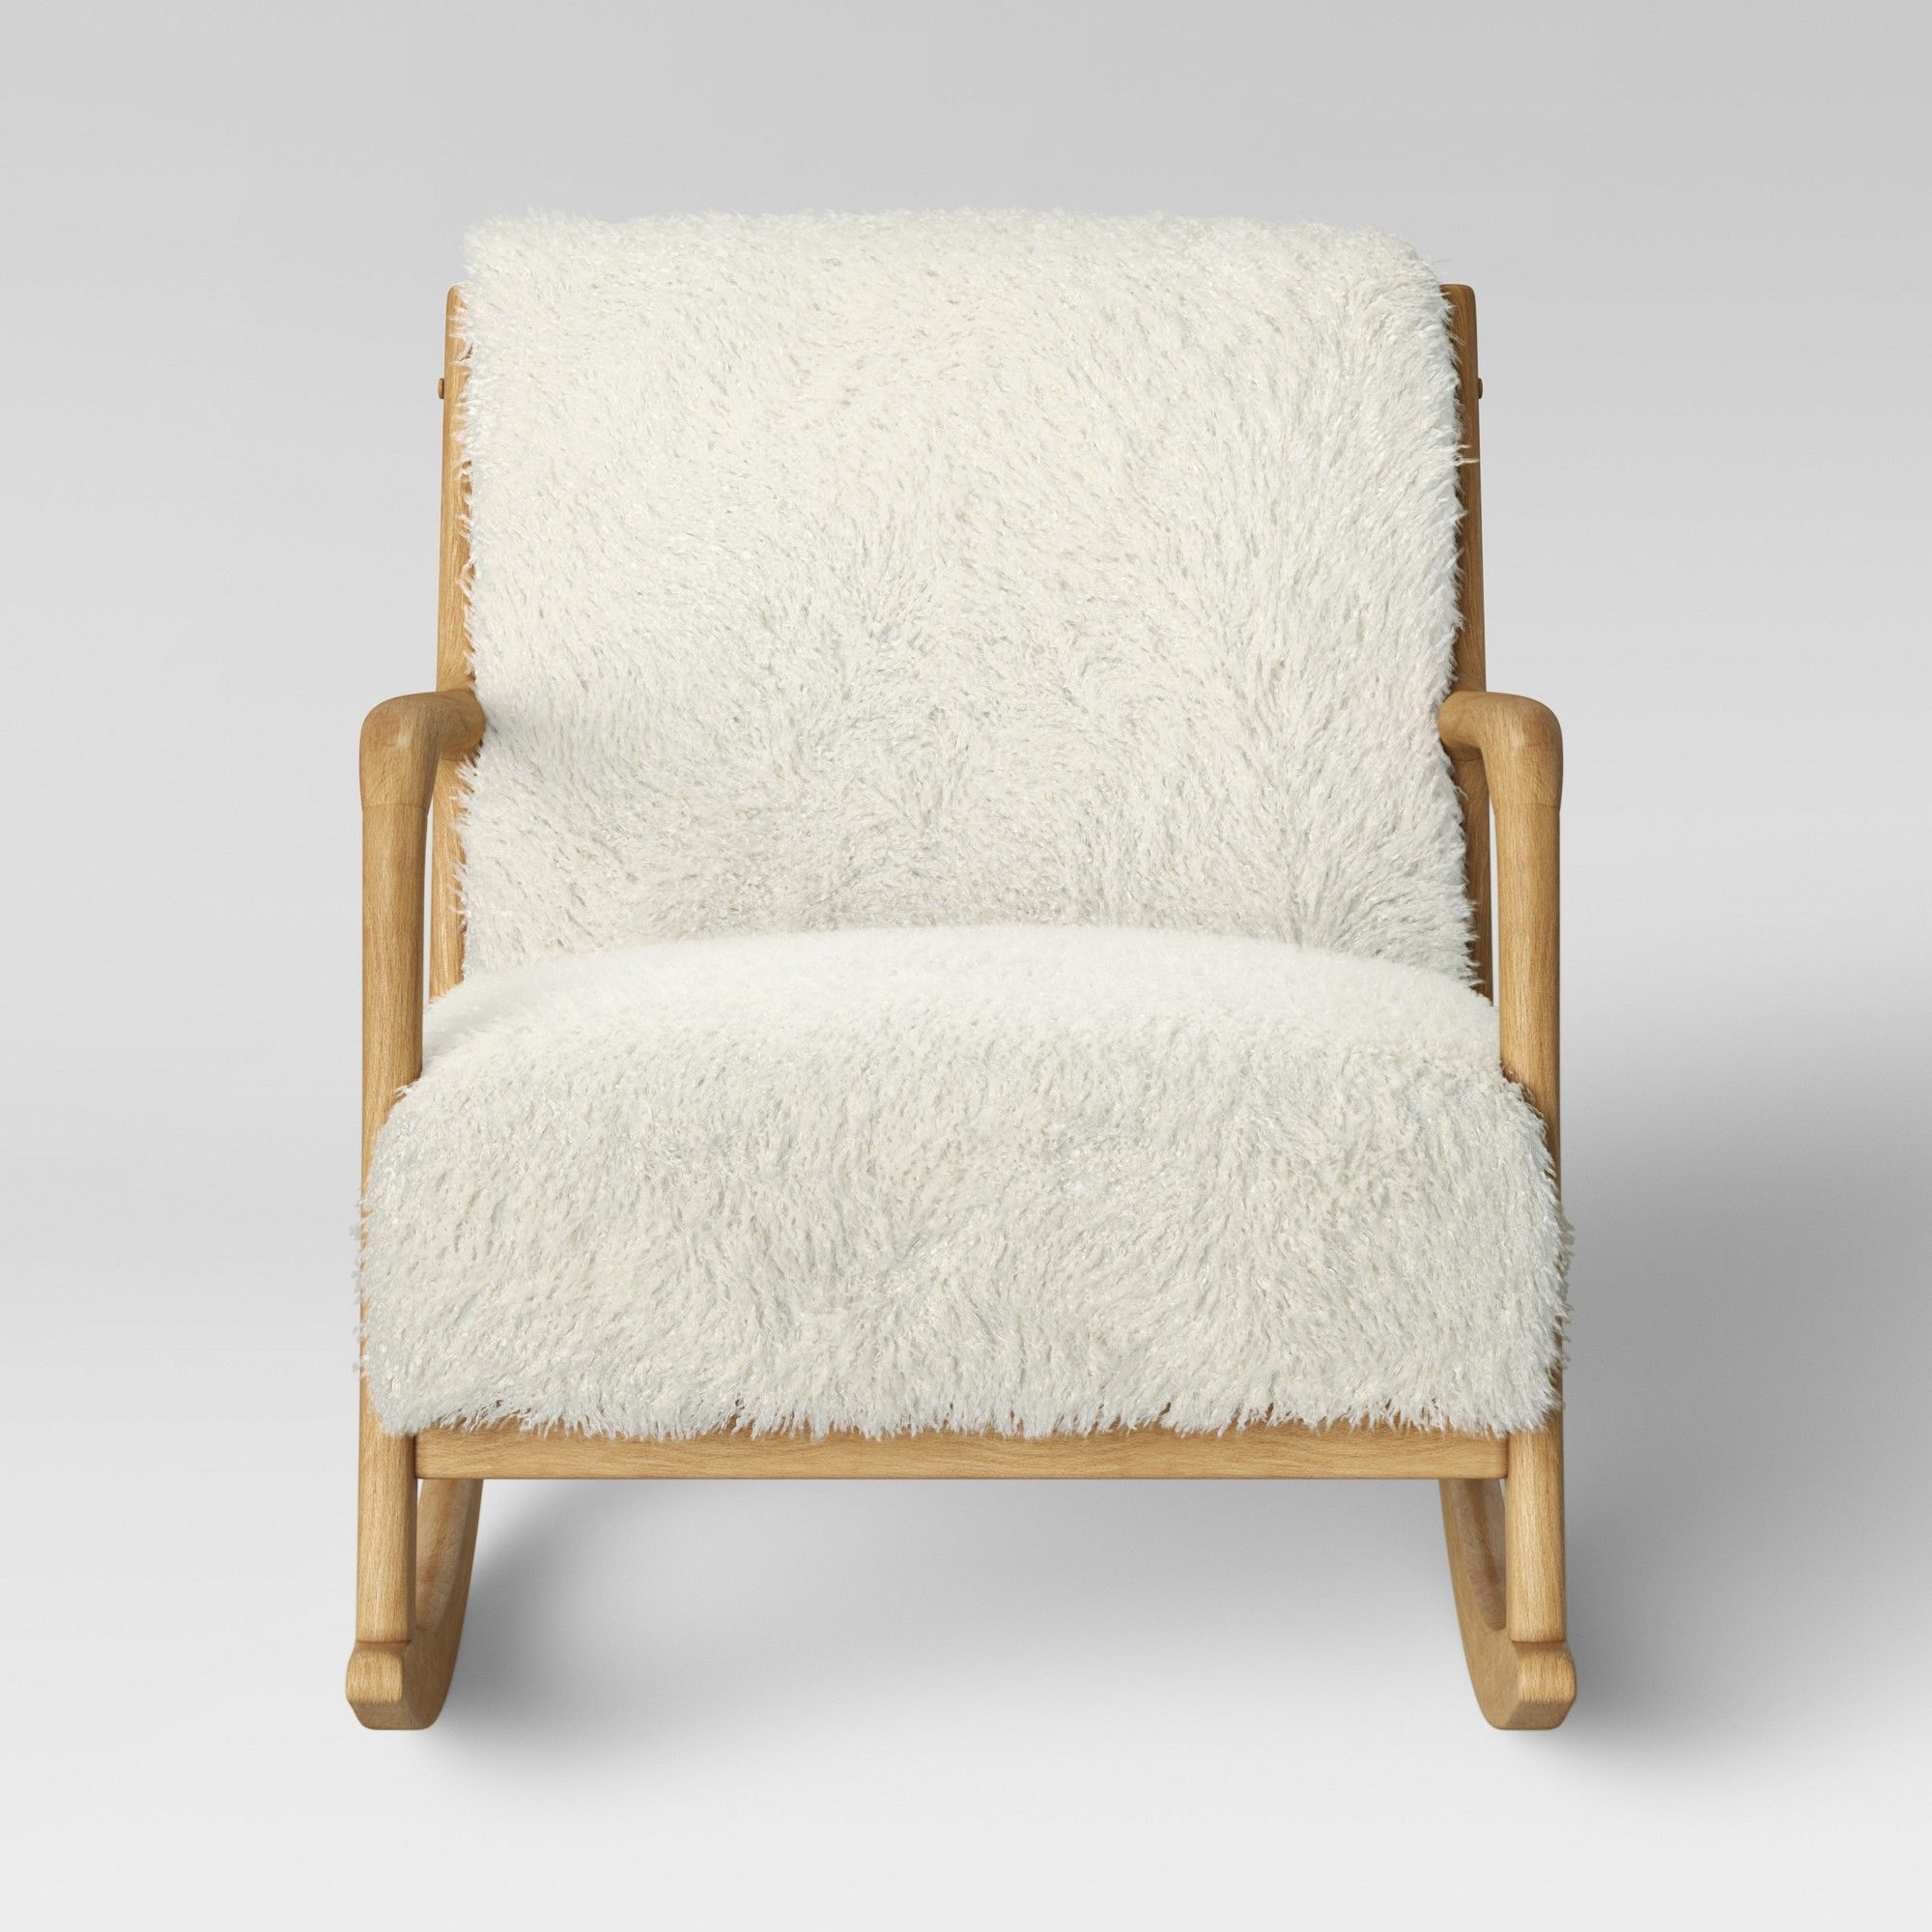 Esters Wood Arm Chair Sherpa White Project 62 Products